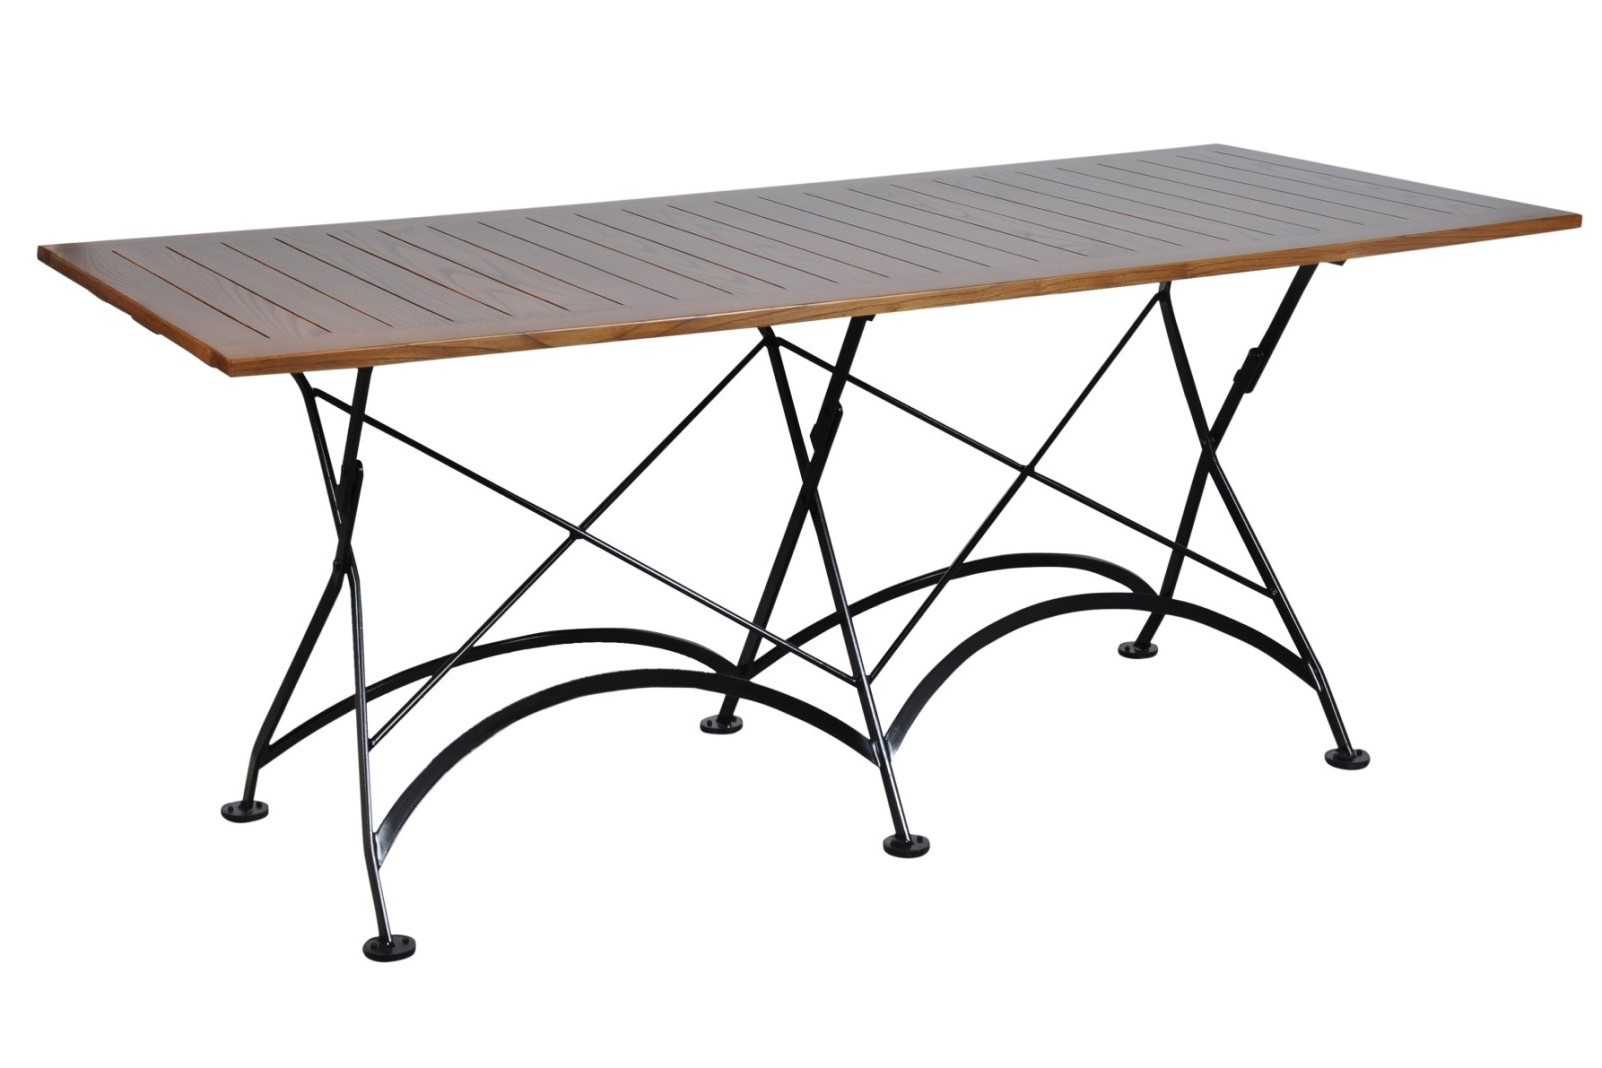 4116CW-BK European Chestnut dining table